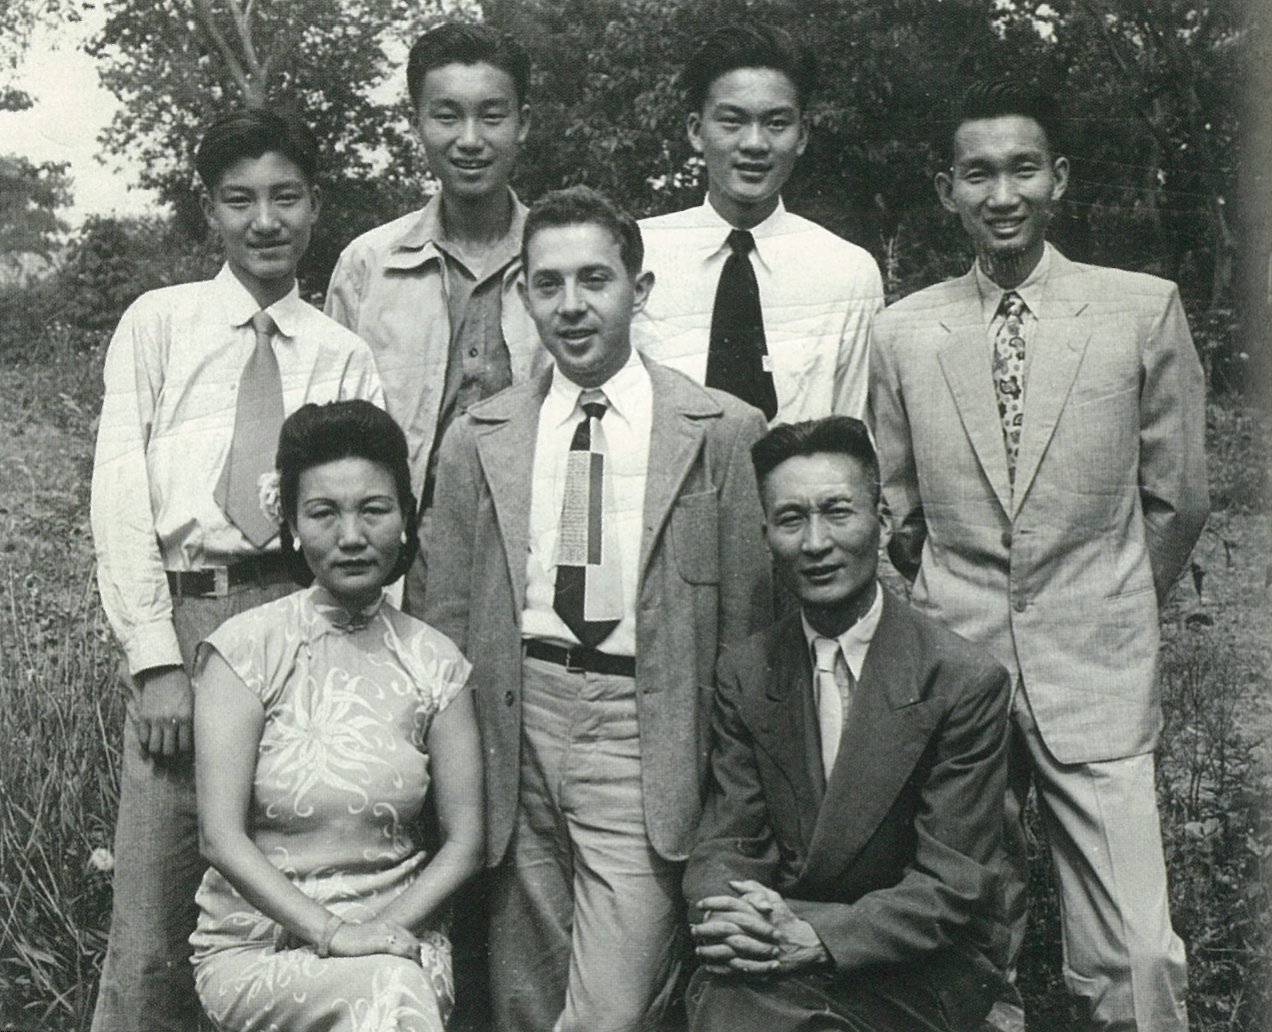 "Fig.7. The author with the Sie (Hsieh, Xie) family with whom he 'lived for almost four years in Nanking, 1946-1950, while a student at the University of Nanking.' Seated in front, Mrs. Sie (Zhang Shaoliang) and Mr. Sie (Xie Xiang). From left to right standing at back: Willie 14, 5' 8"" (Xie Lie); John 18, 6' 2"" (Xie Ran); Paul 19, 6' 3"" (Xie Tao); Peter 23, 6' 1"" (Xie Jie). 'Mrs. Sie came out the worst of the lot of us, cause she isn't smiling. Not typical of her. (I think Willy was pinching John and had just been scolded for it by his mom, which explains those three expressions.) June 6, 1948.' Passages in quotation marks and the heights and ages of the sons are taken from the author's caption written on the back of the photograph. From the author's papers."